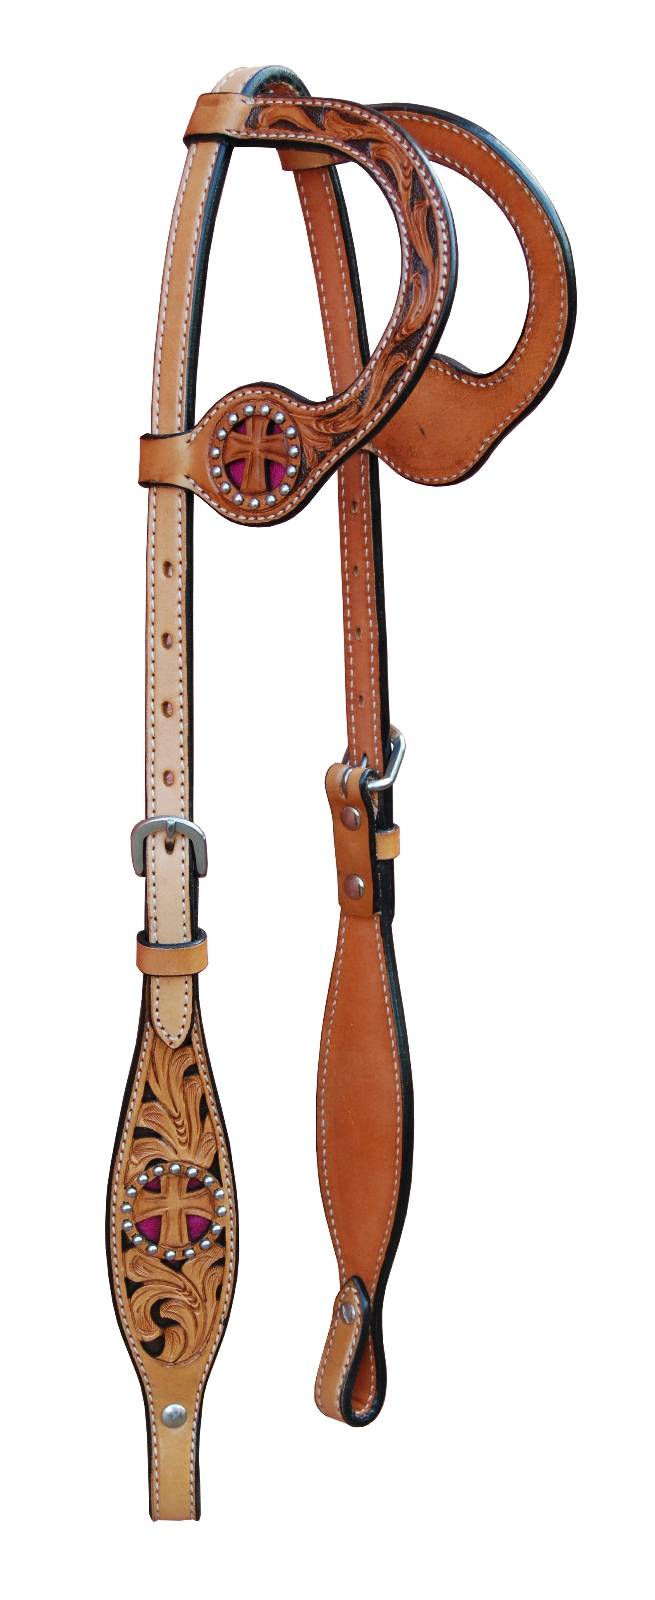 Turn-Two Double Ear Headstall - St. Christopher